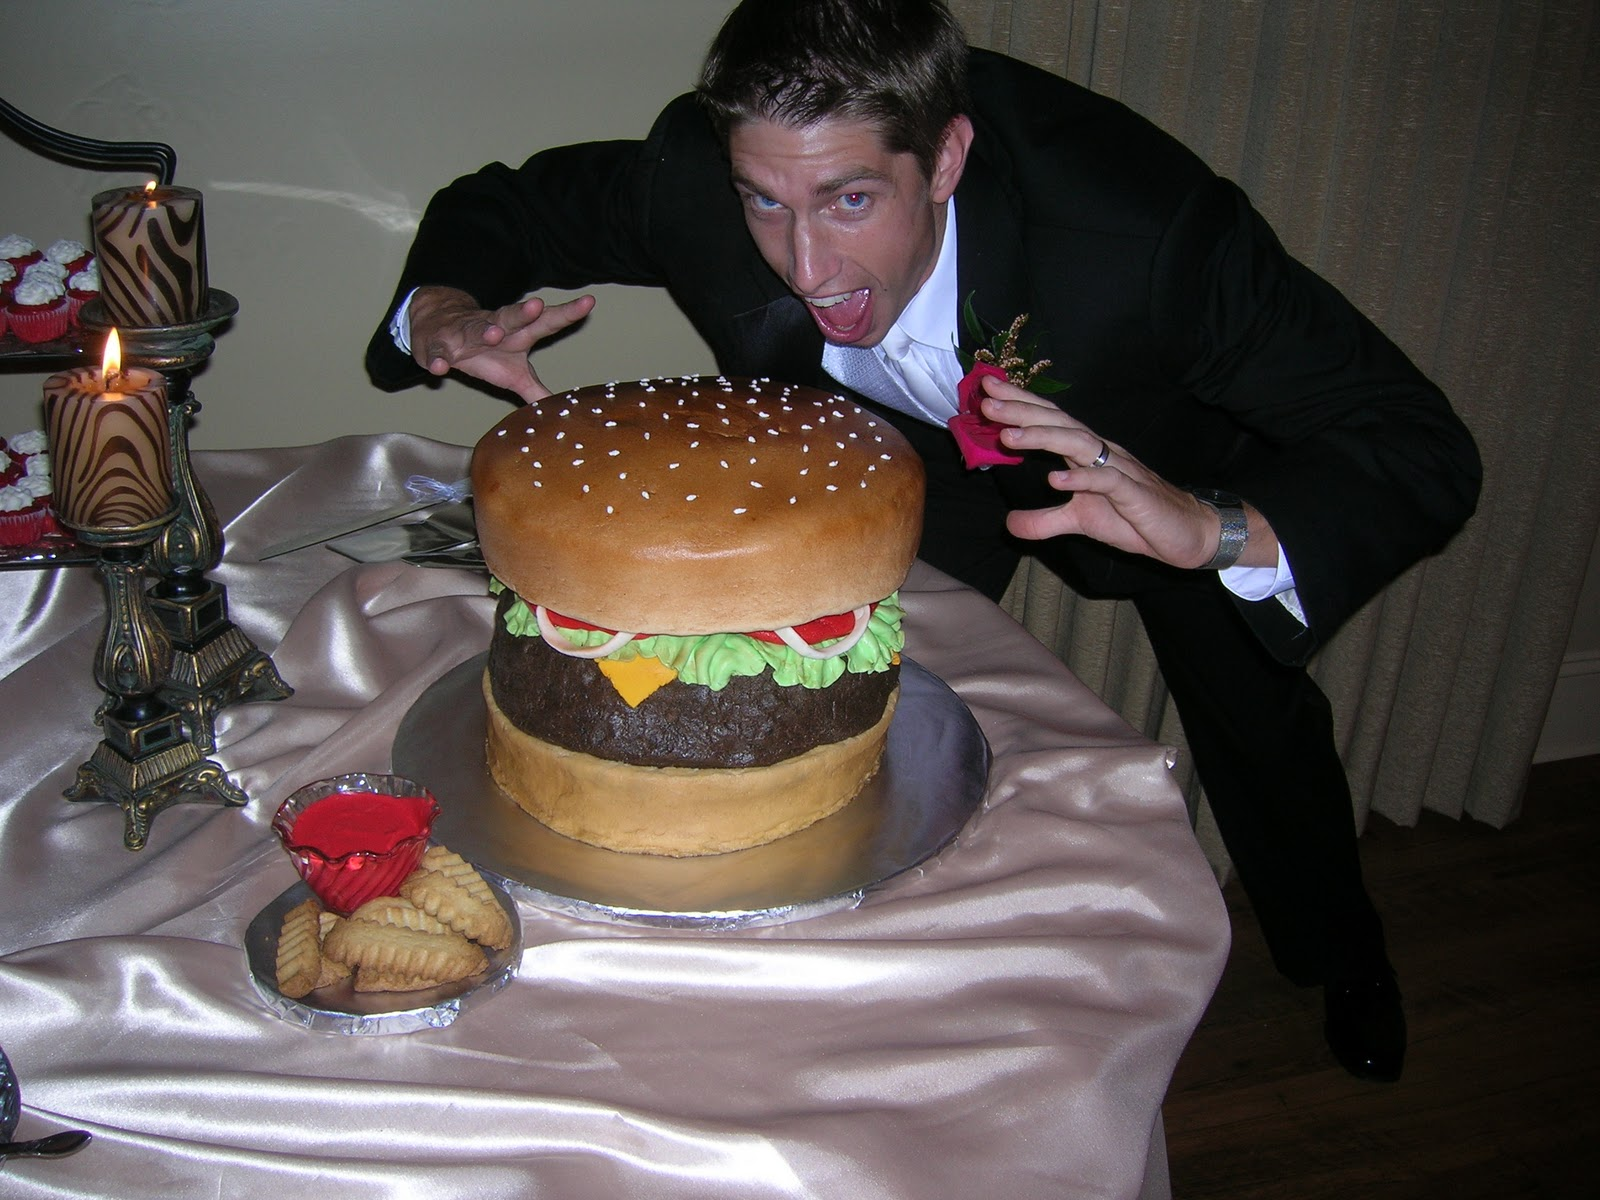 hamburger grooms cake. Black Bedroom Furniture Sets. Home Design Ideas